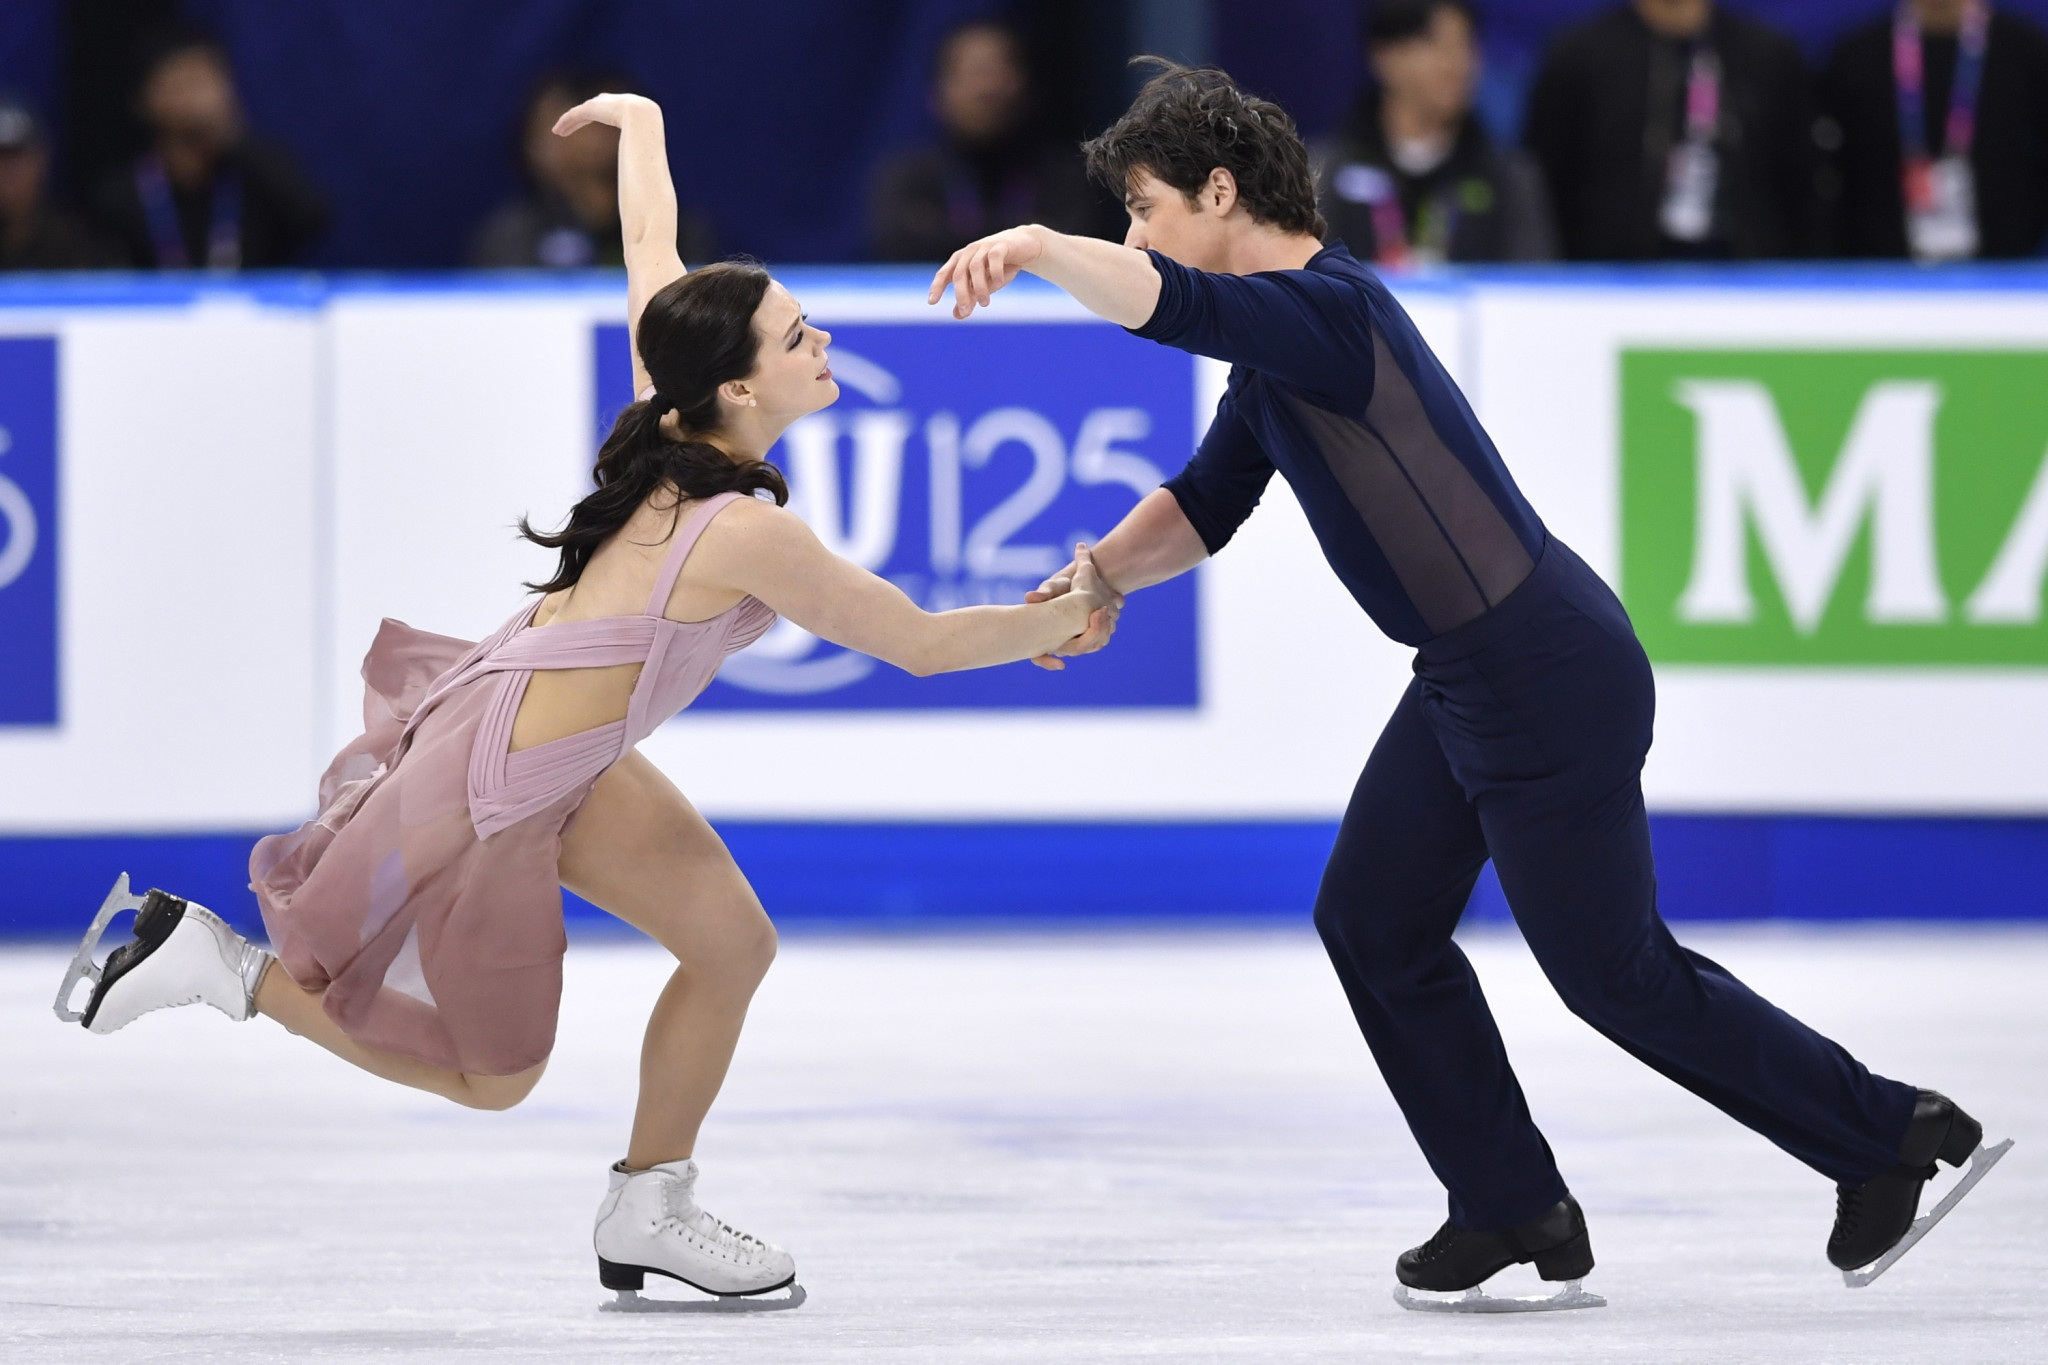 World ice dance champions Tessa Virtue and Canadians Scott Moir will be looking to follow up their victory at Skate Canada International with another good performance at the NHK Trophy in Osaka ©Getty Images